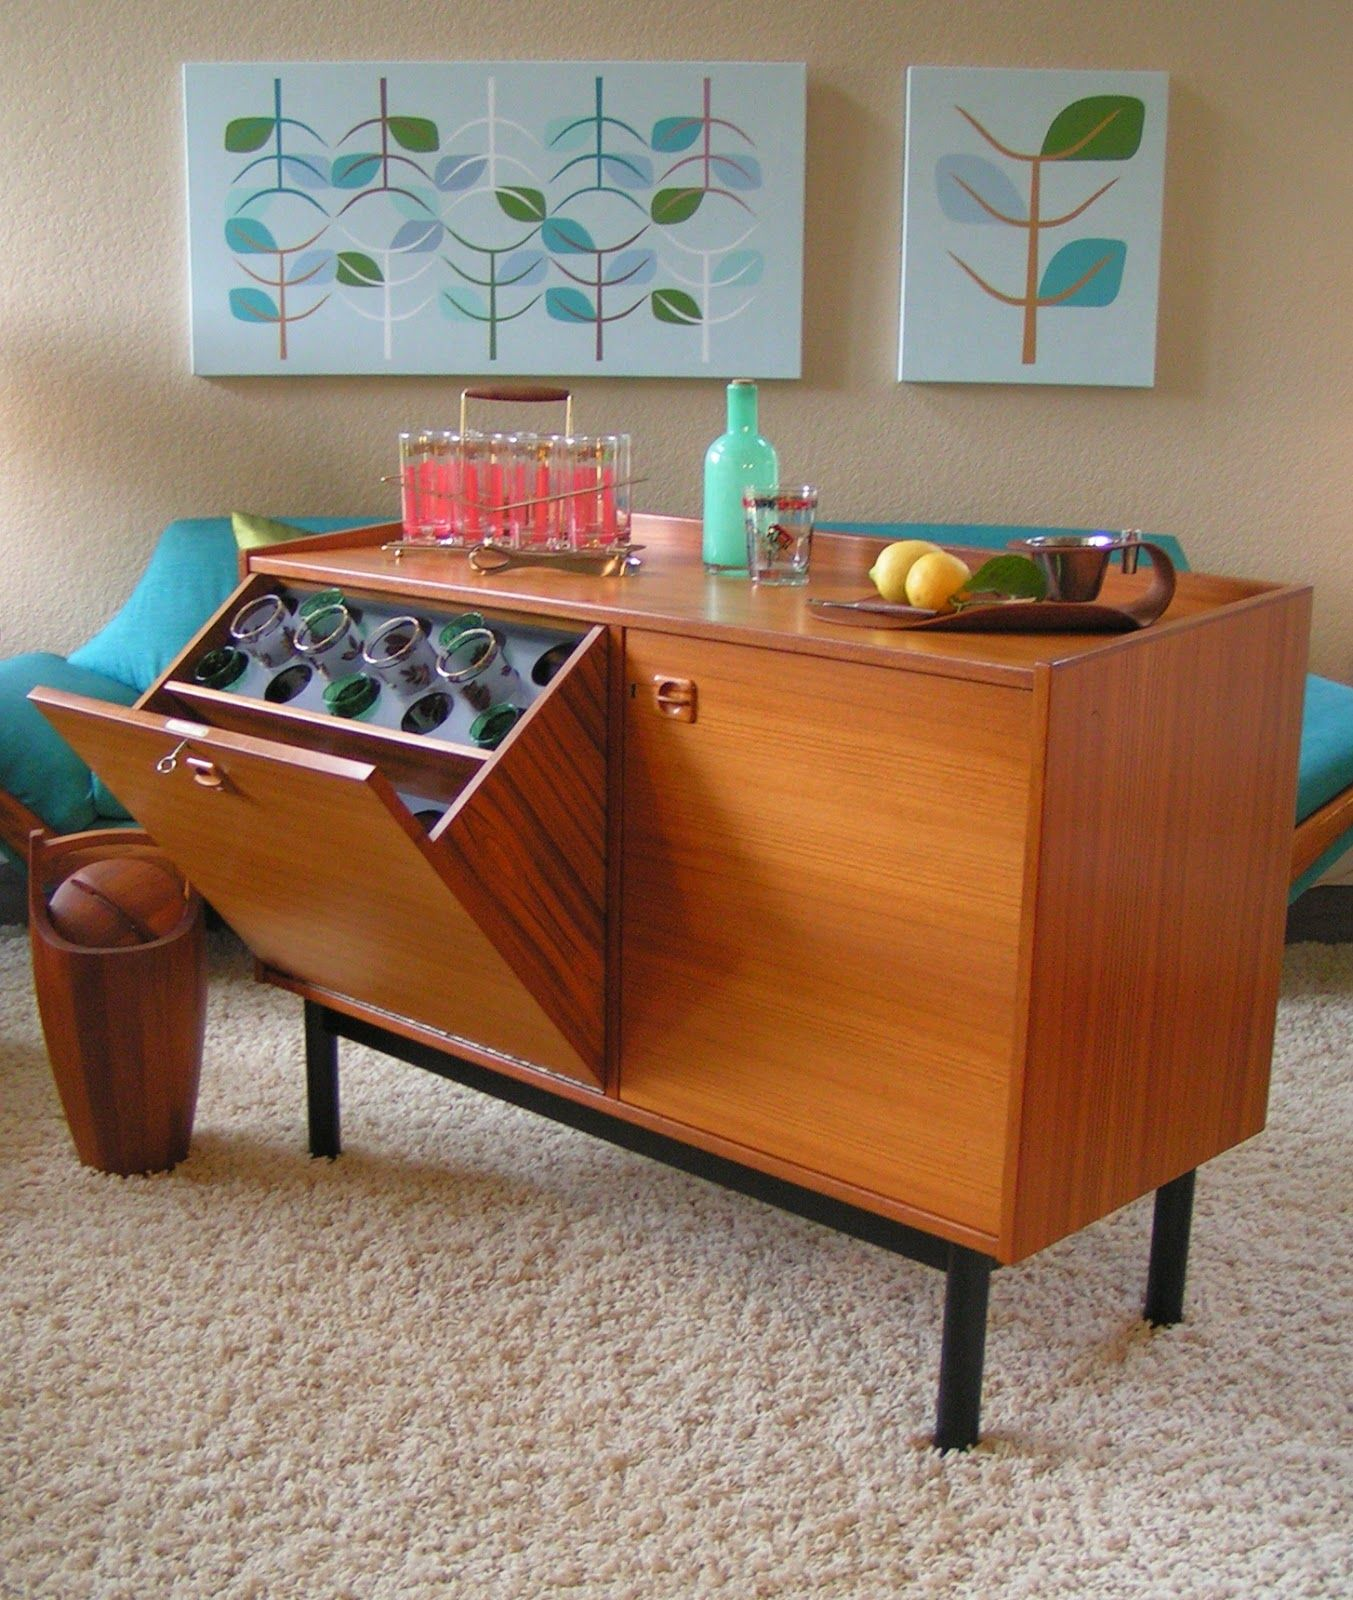 Mid century modern danish teak sideboard has a tilt open bar cabinet. Like  the design